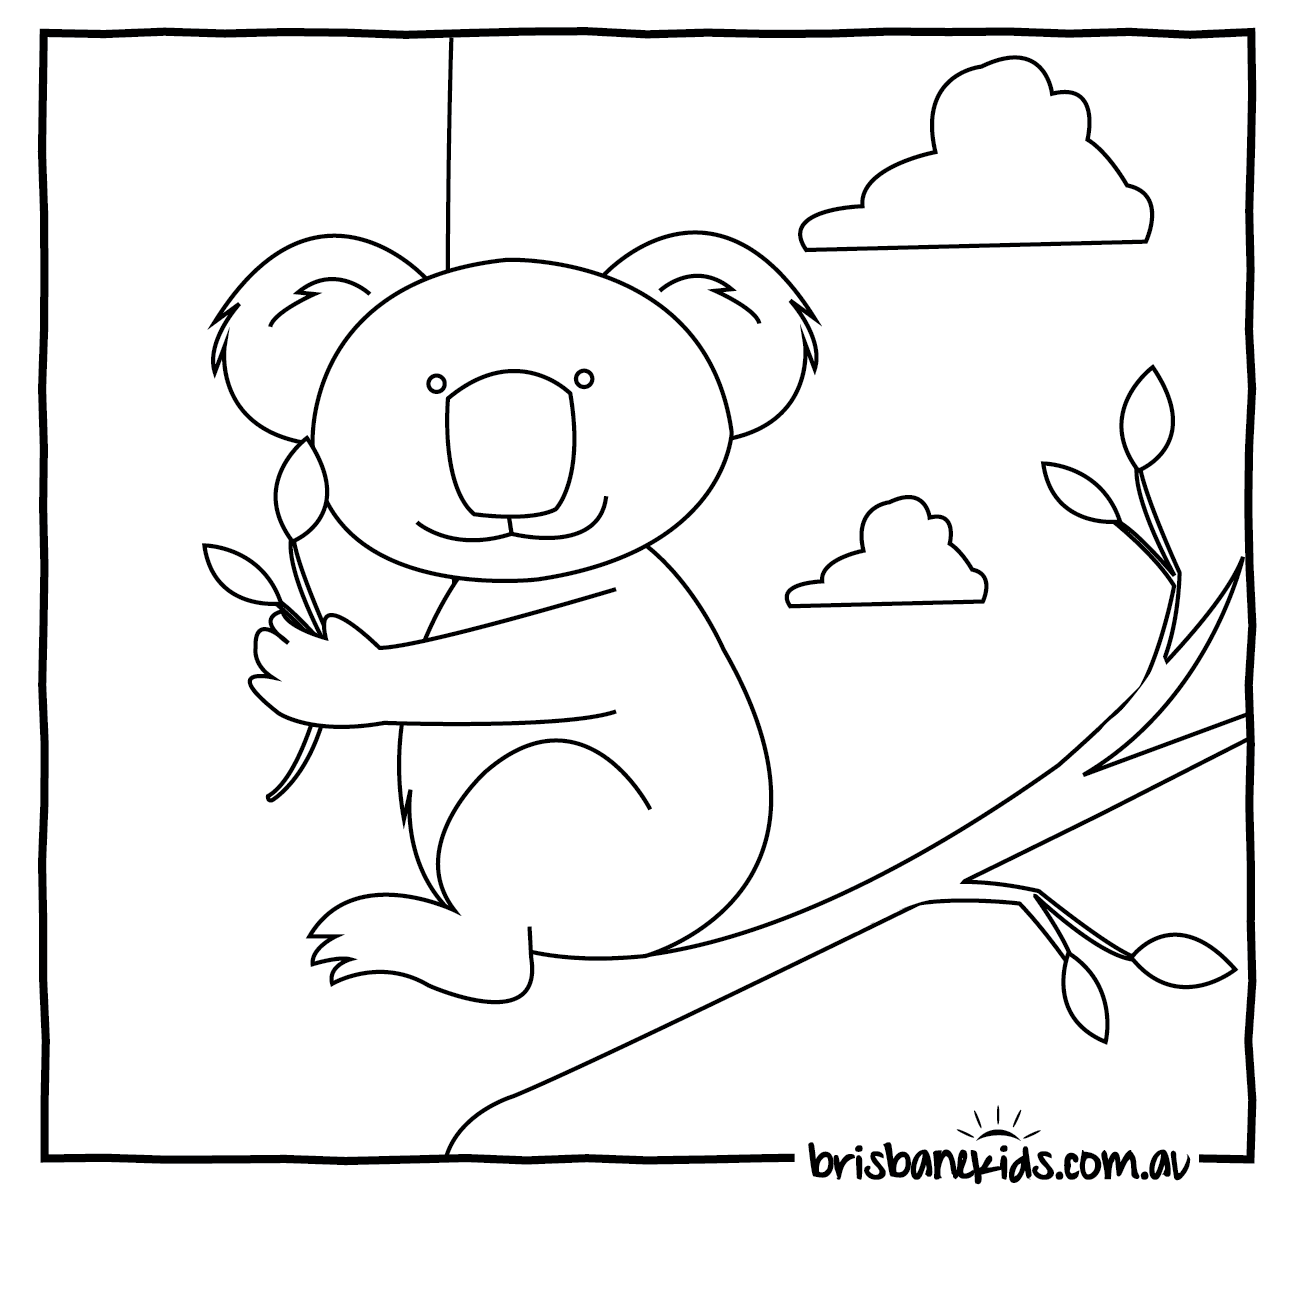 christmas in australia coloring pages - photo#20